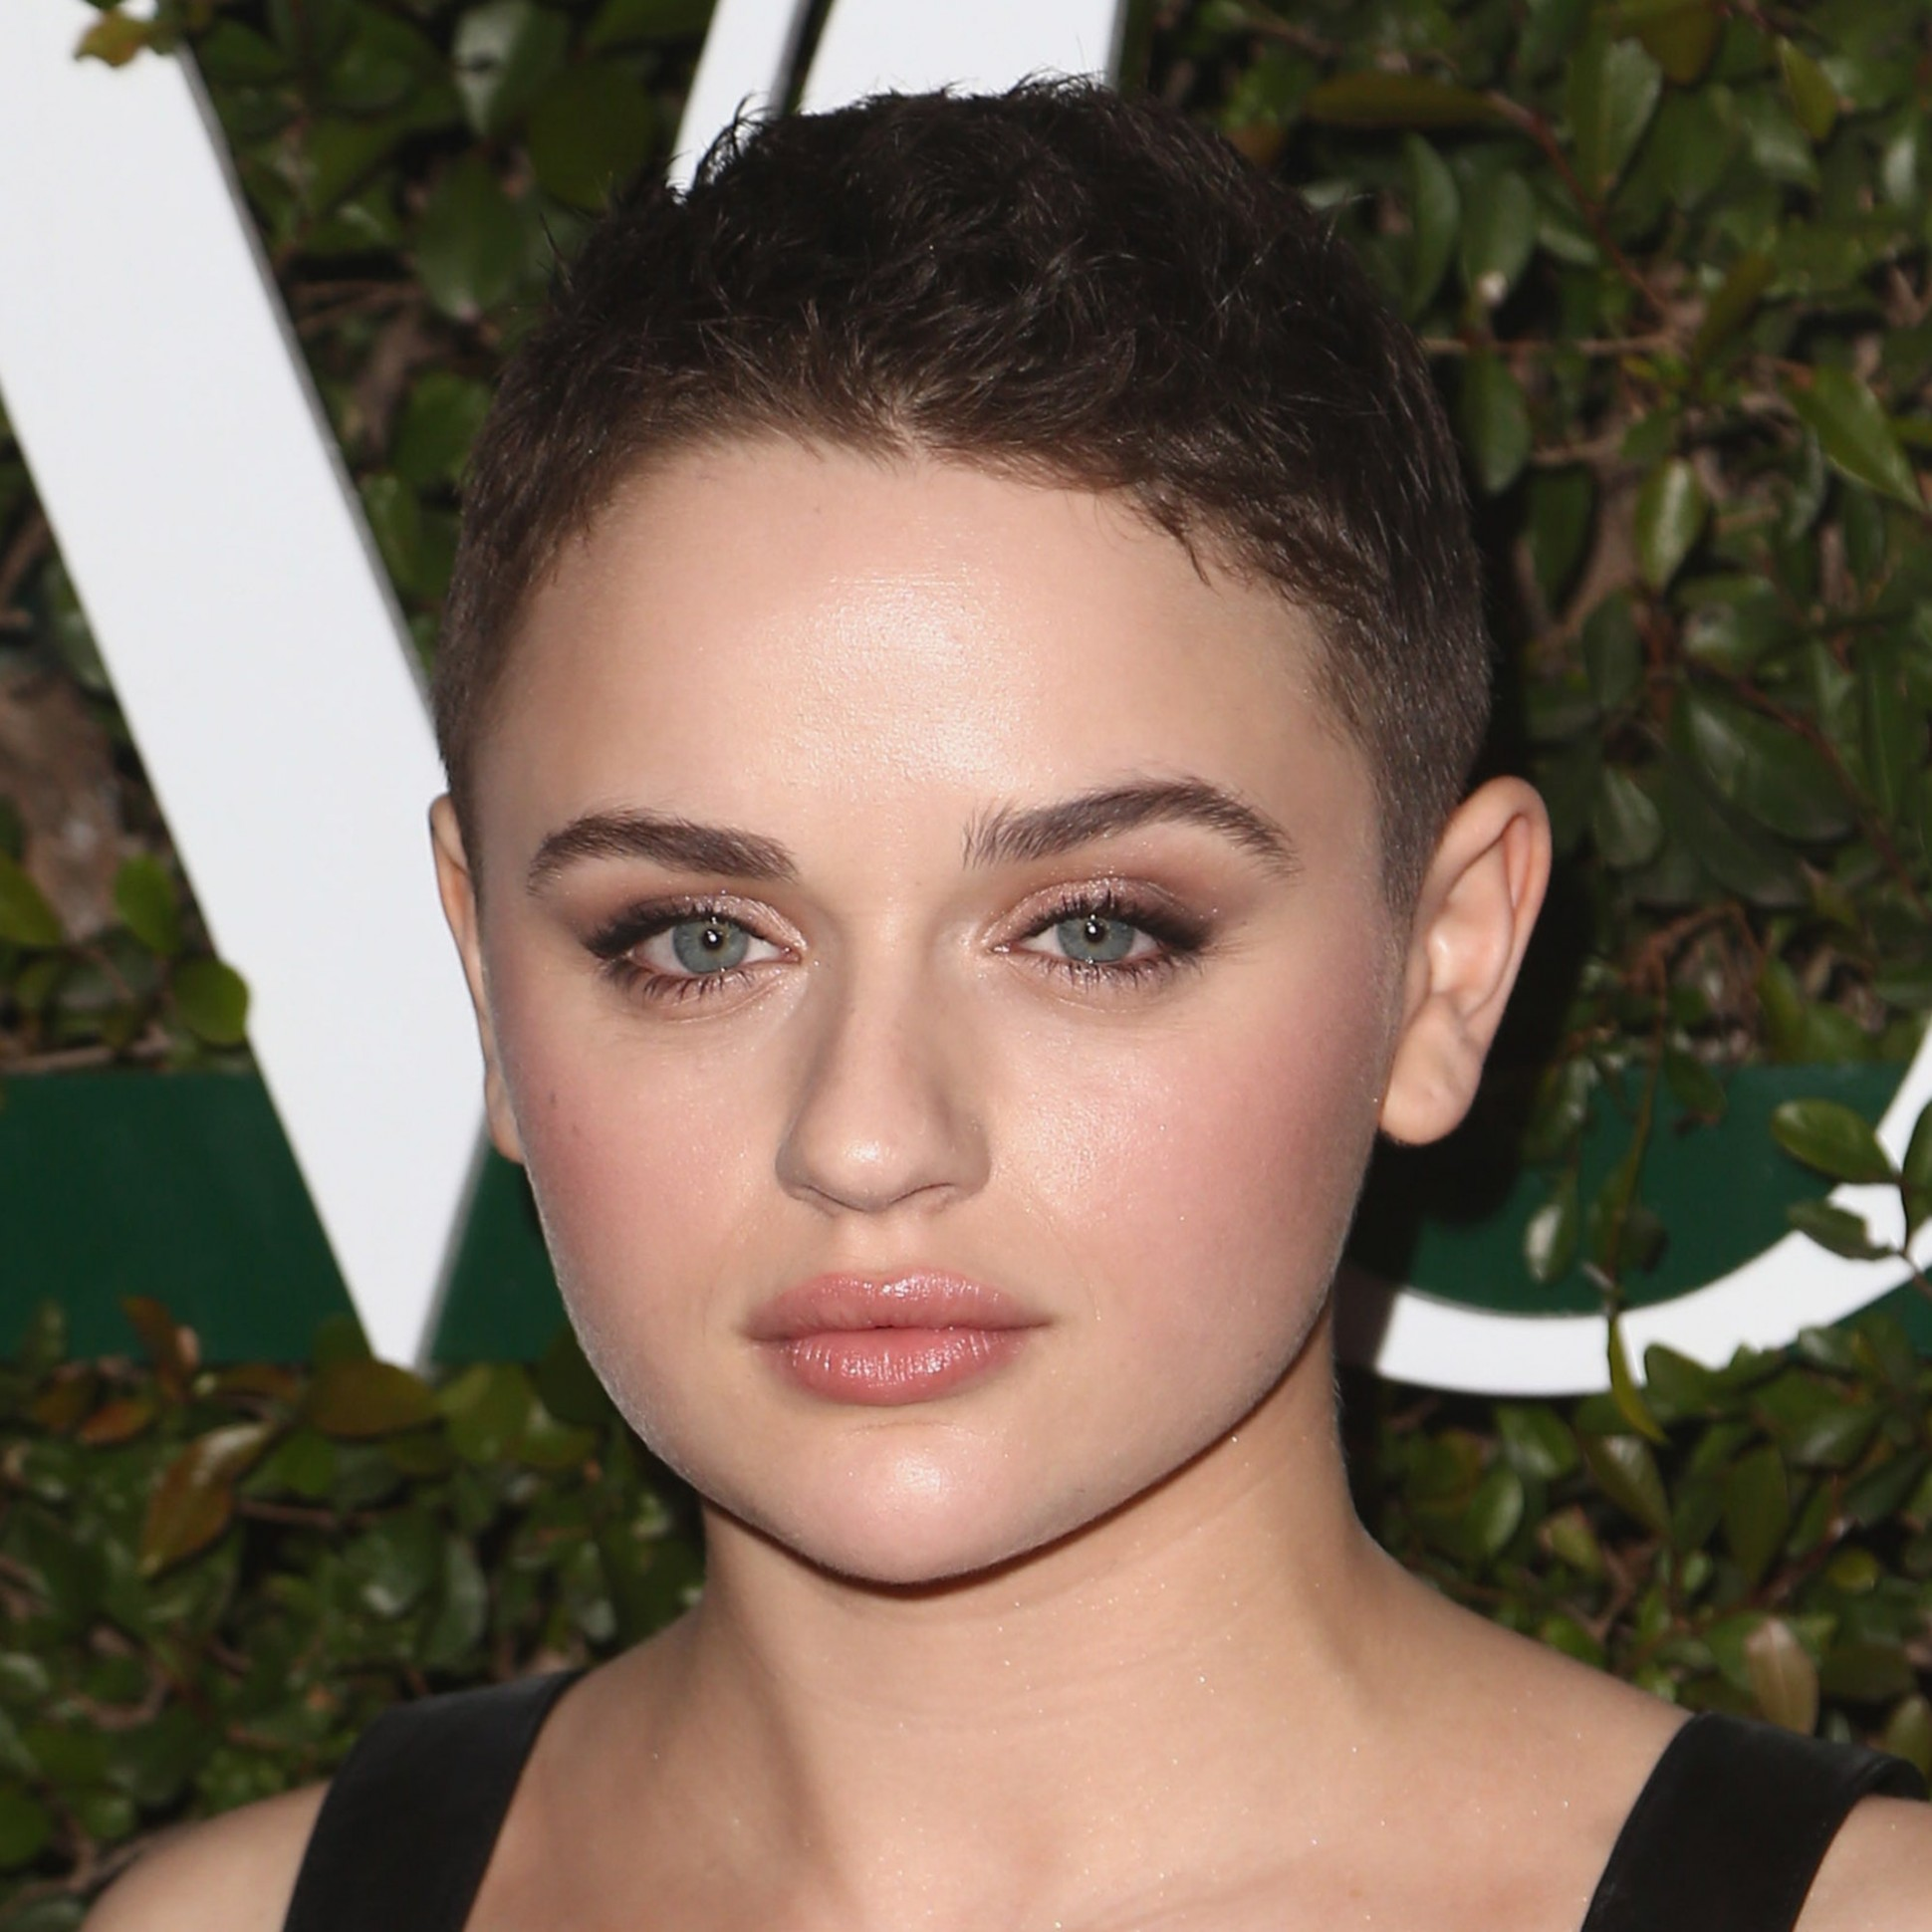 10 Best Pixie Cuts of 2010 - Celebrity Pixie Hairstyle Ideas  Allure